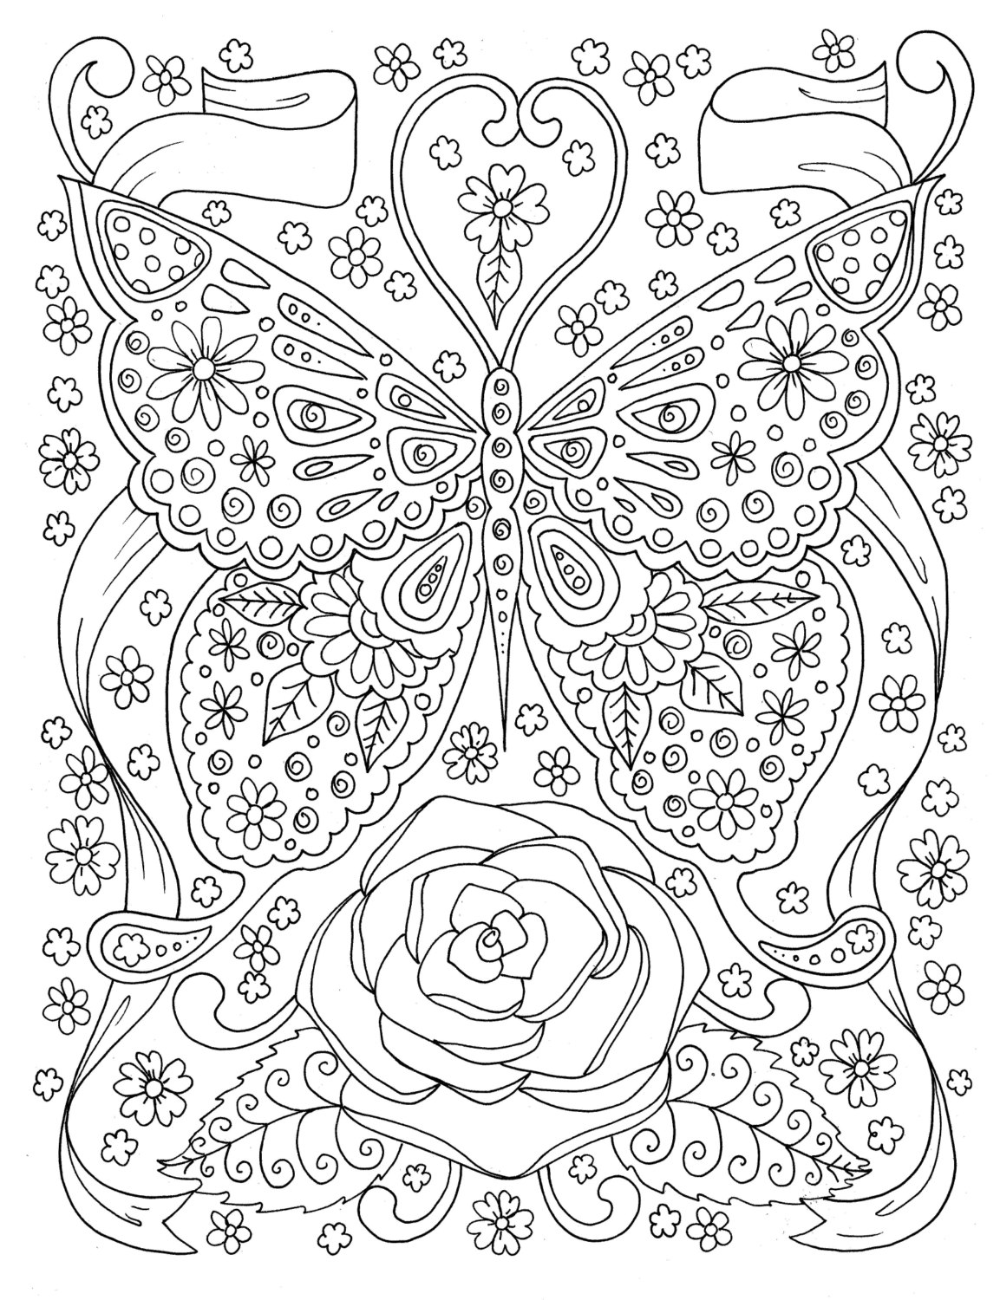 Pin On Coloring Pages Deborah Muller